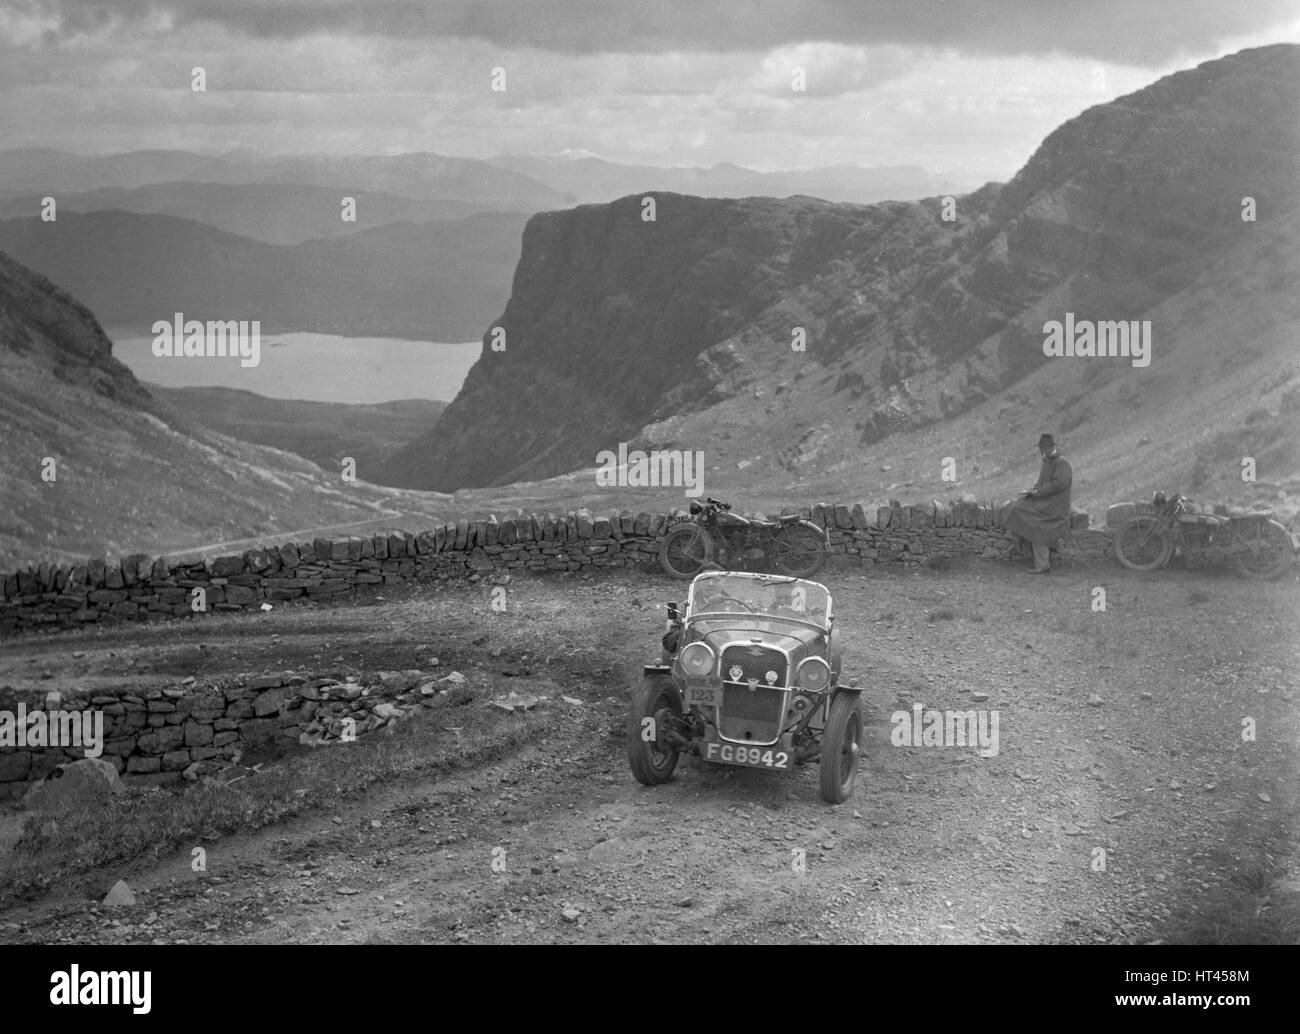 Singer Le Mans of TL McDonald competing in the RSAC Scottish Rally, 1936. Artist: Bill Brunell. - Stock Image